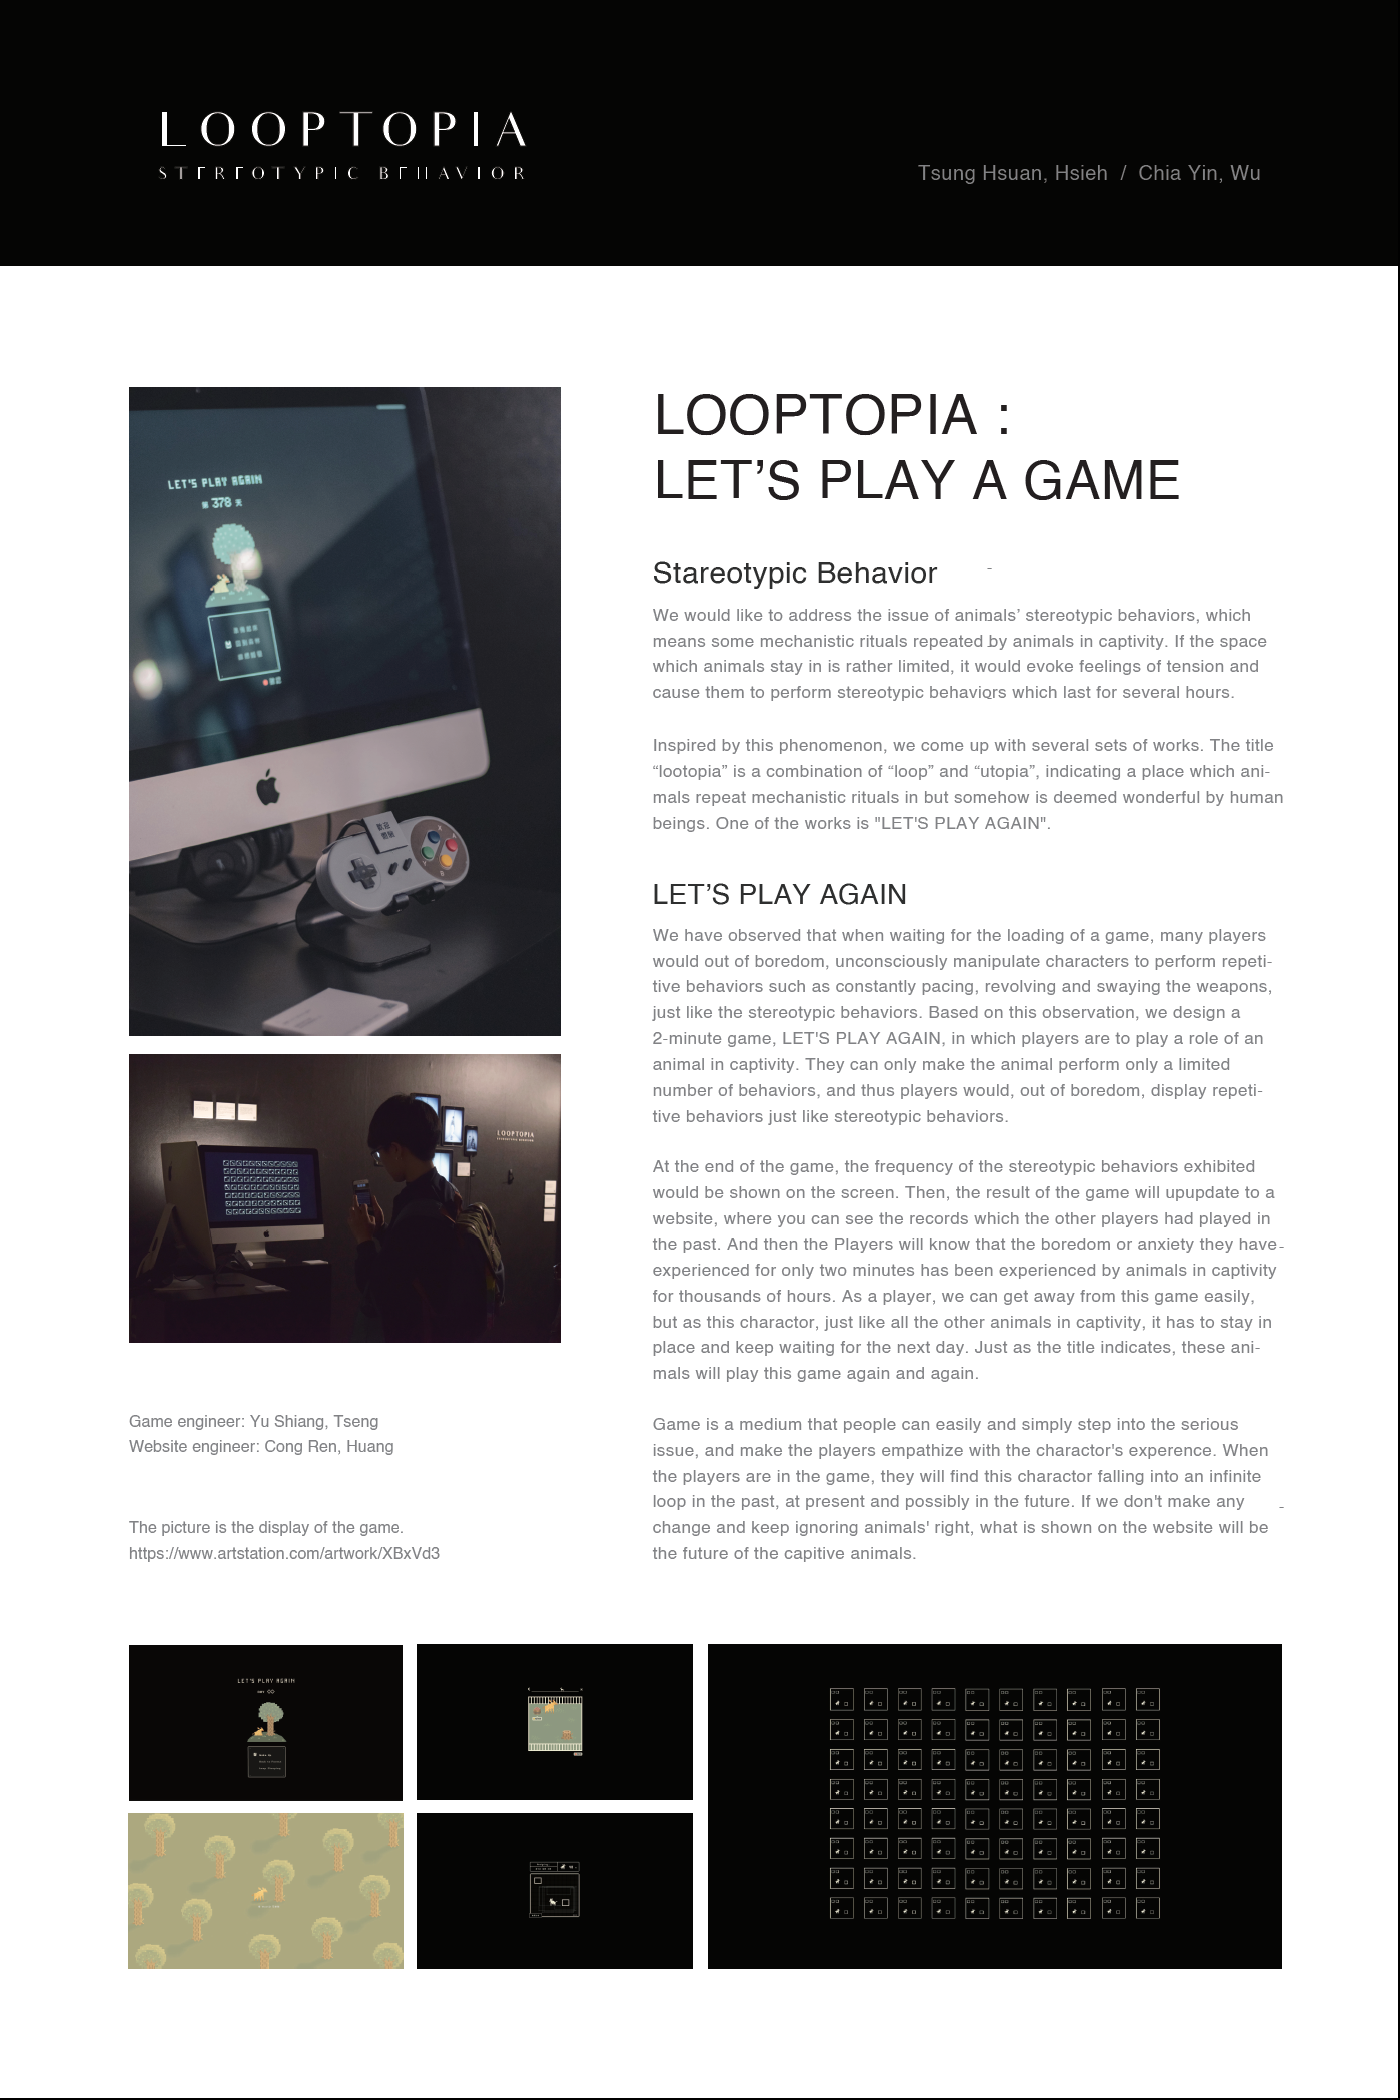 LOOPTOPIA: LET'S PLAY AGAIN   Tsung Hsuan, Hsieh / Chia Yin, Wu  Stereotypic behaviors means some mechanistic rituals repeated by animals in captivity. We observed that many players would do something like stereotypic behaviors when waiting for the loading of a game.